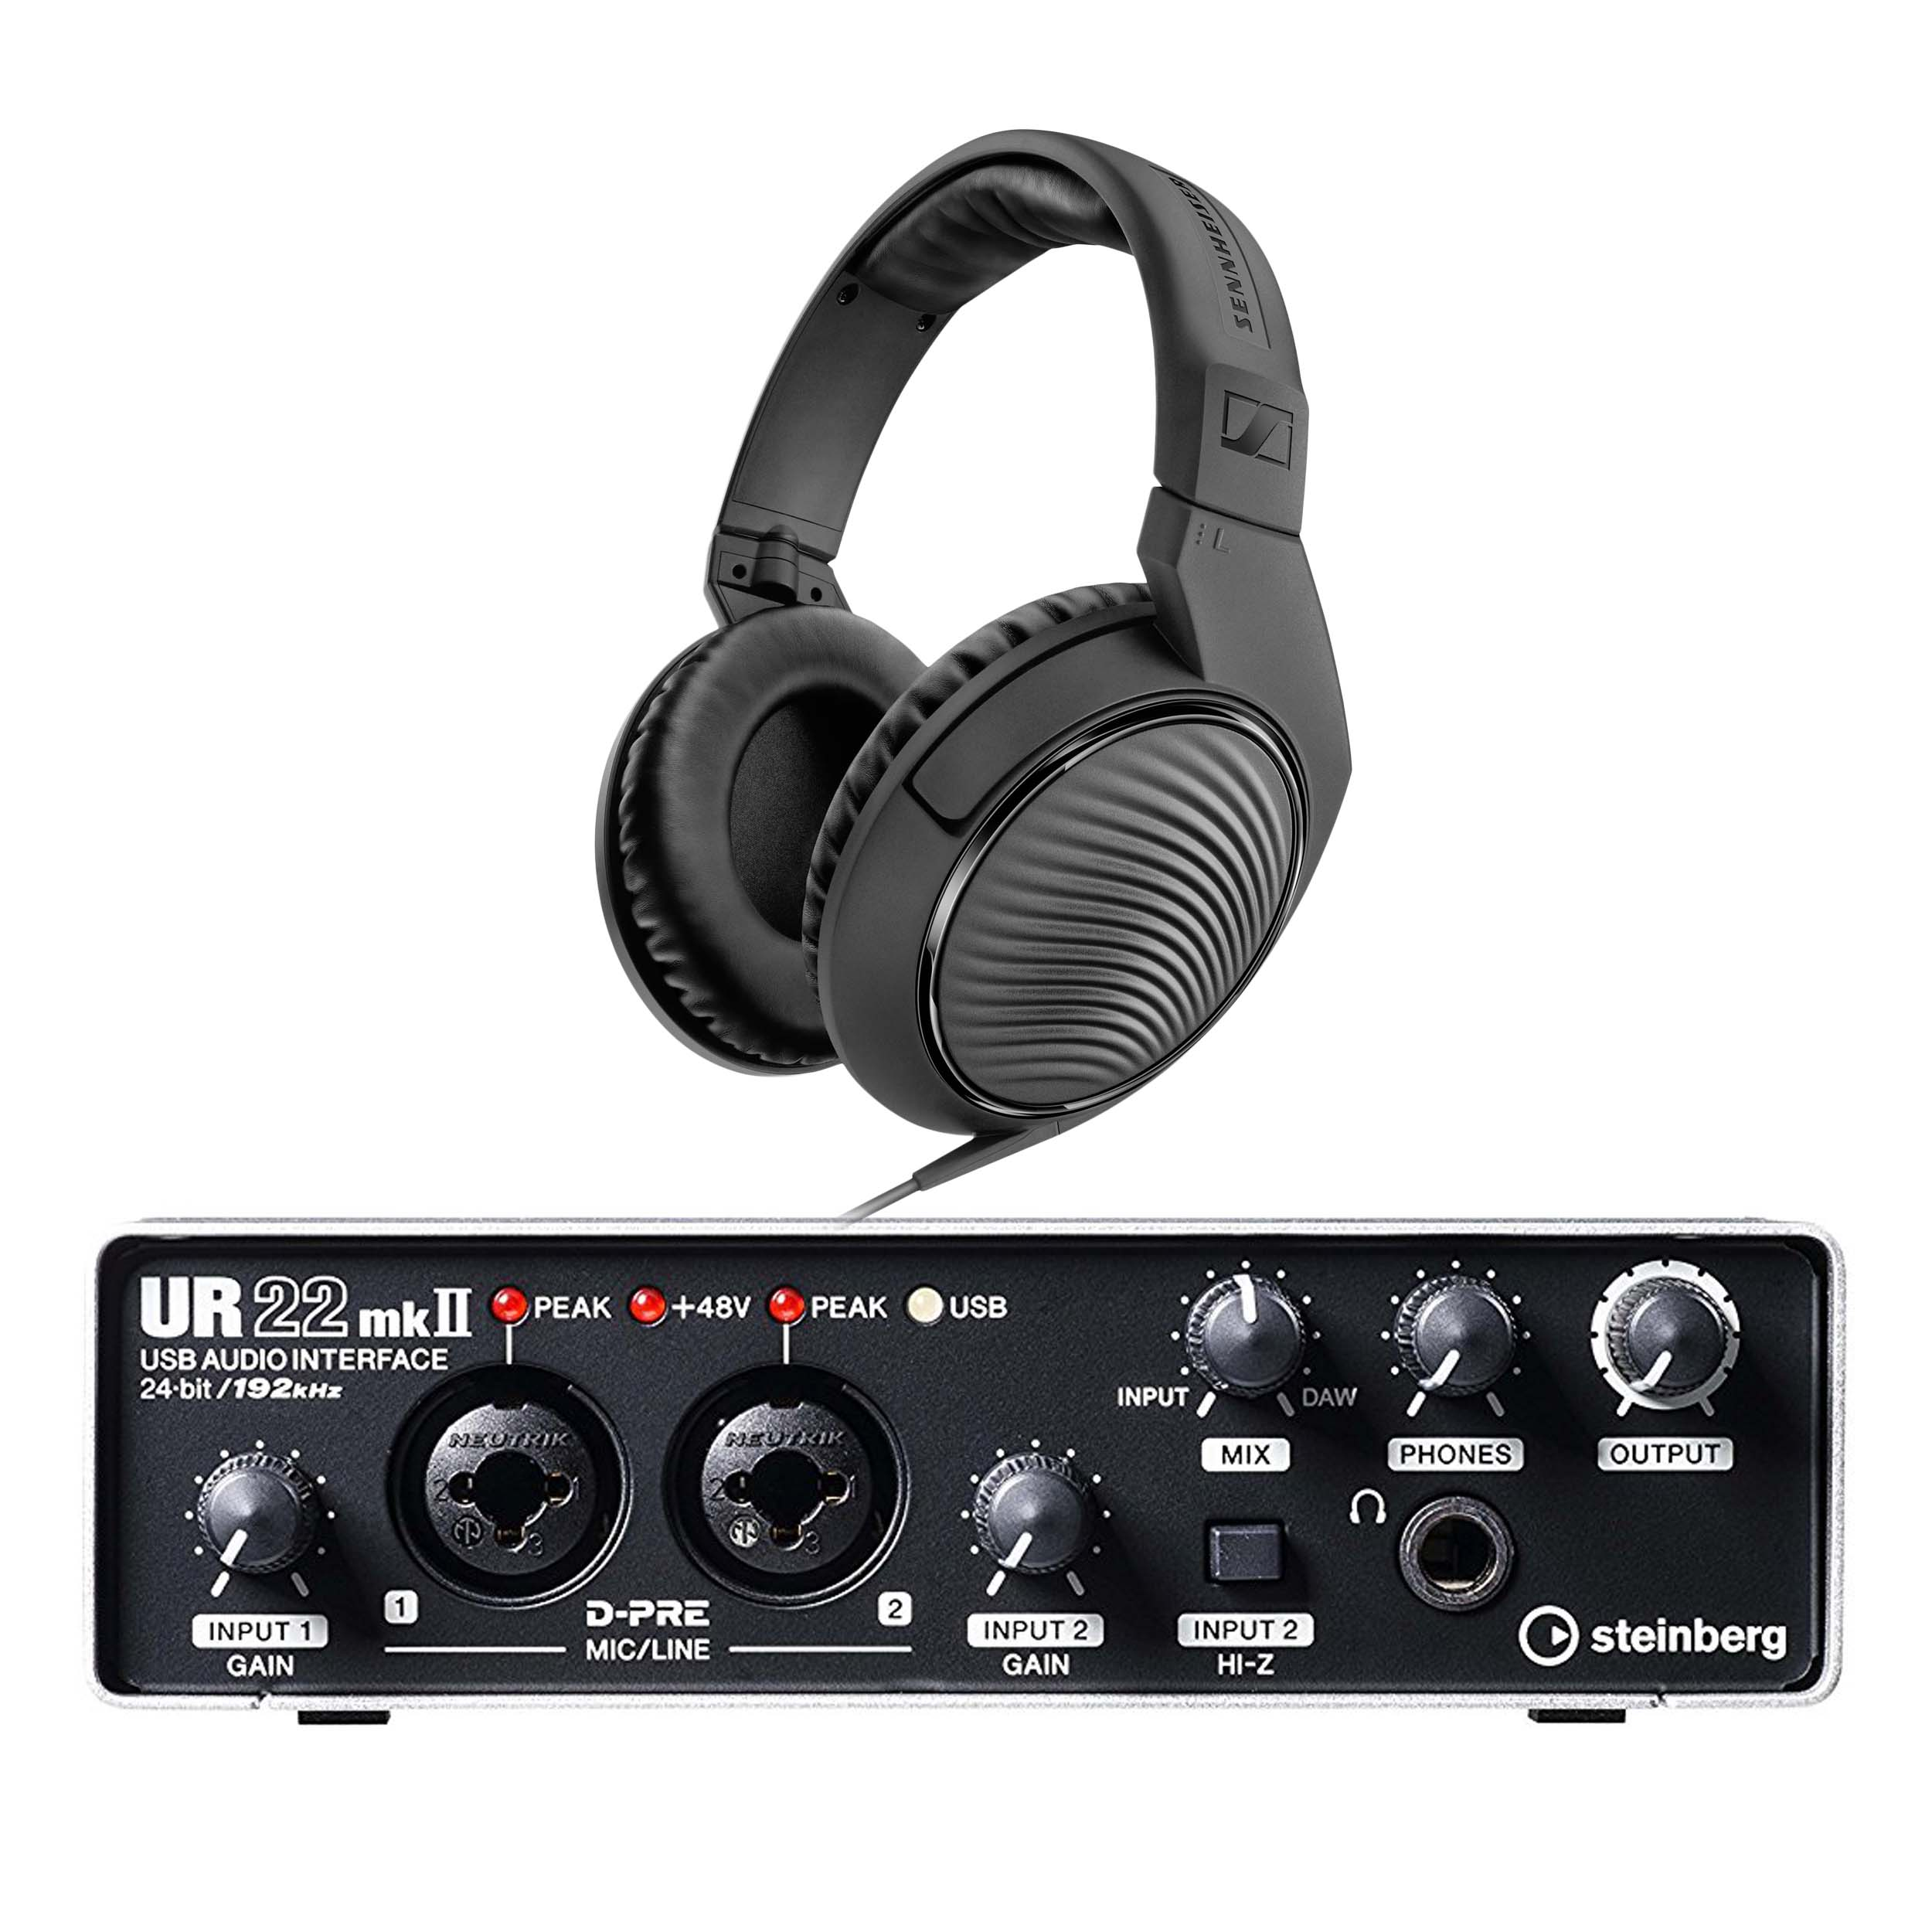 Details about Steinberg UR22 MK2 Two-Channel USB Audio Interface with FREE  Headphones